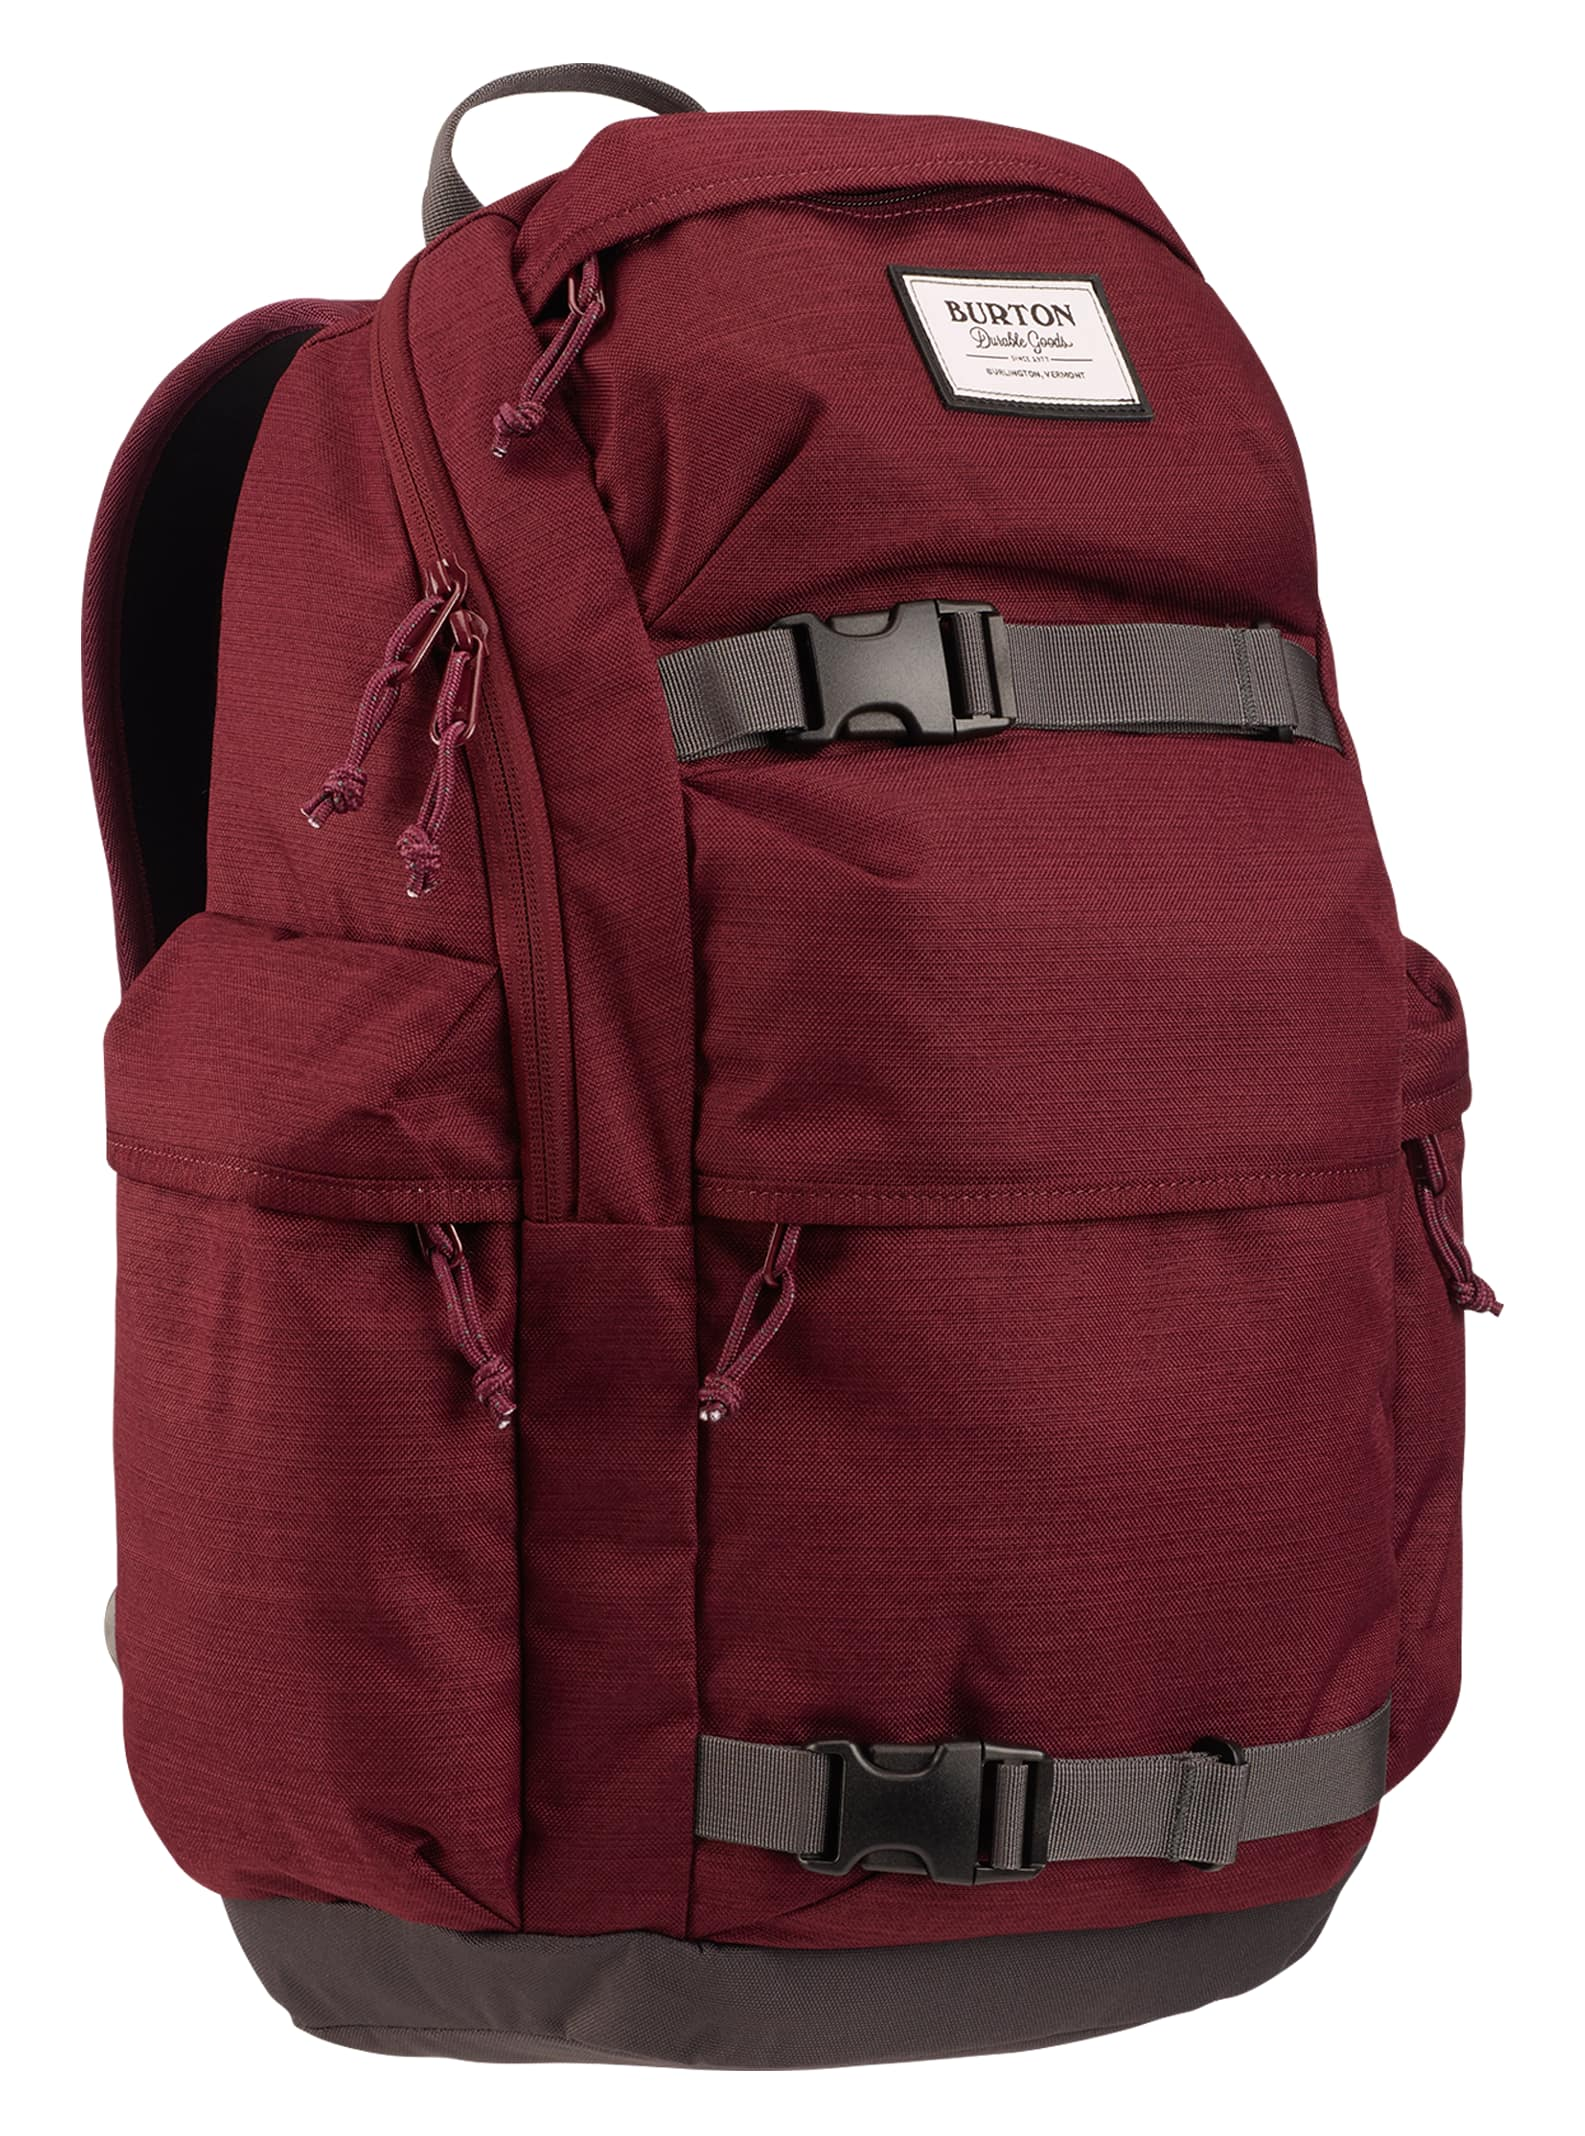 6e4aa07575a0f Burton Kilo Backpack